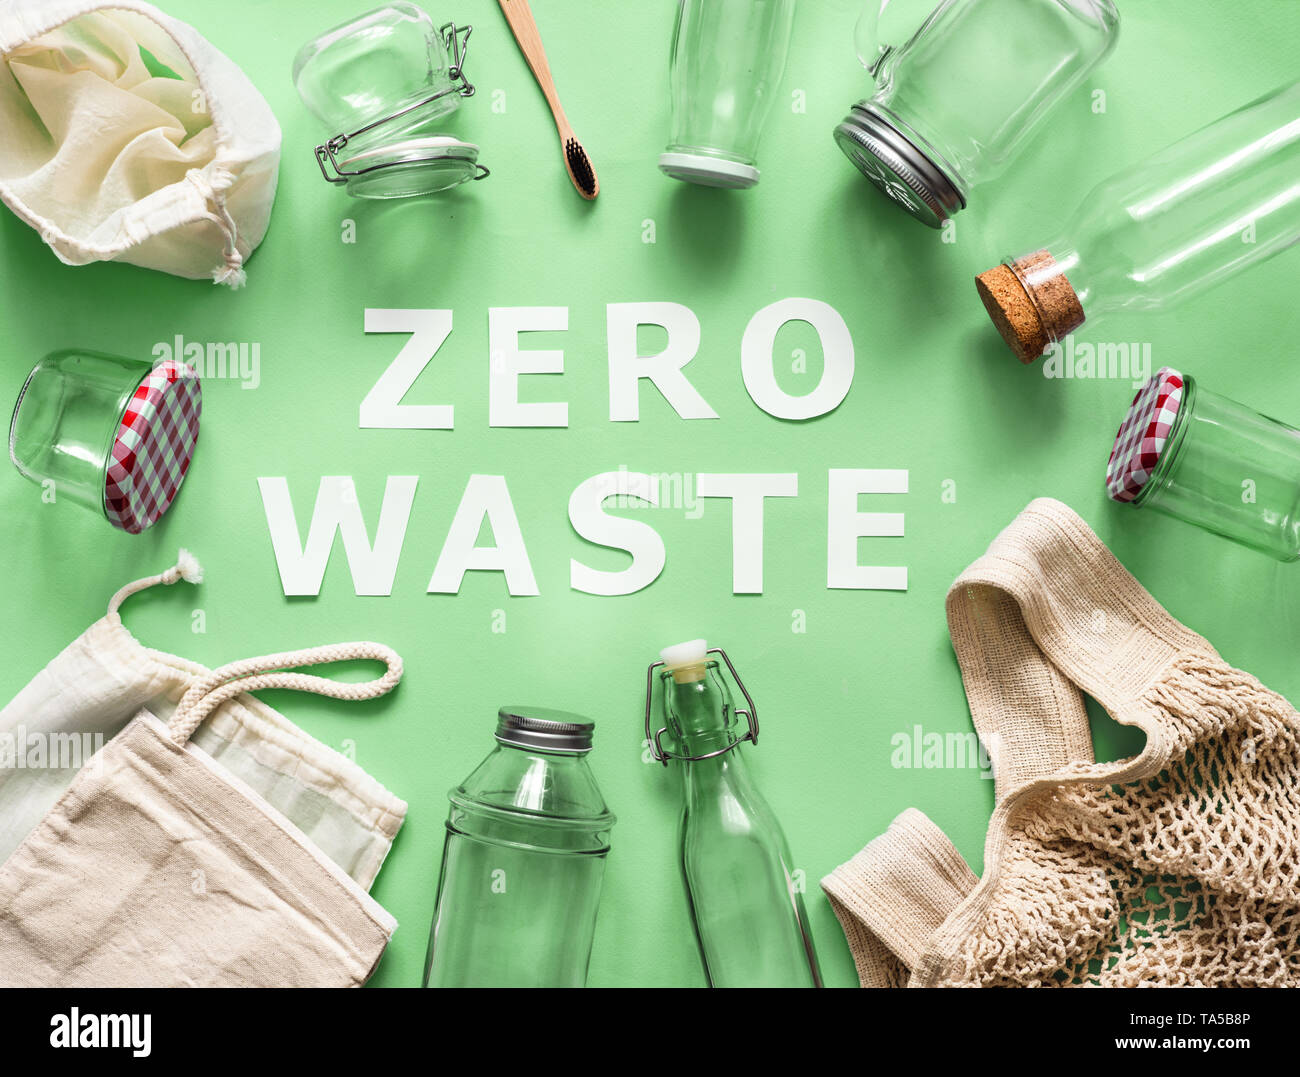 Zero waste concept. Textile eco bags, glass jars and bamboo toothbrush on green background with Zero Waste white paper text in center. Eco friendly an - Stock Image